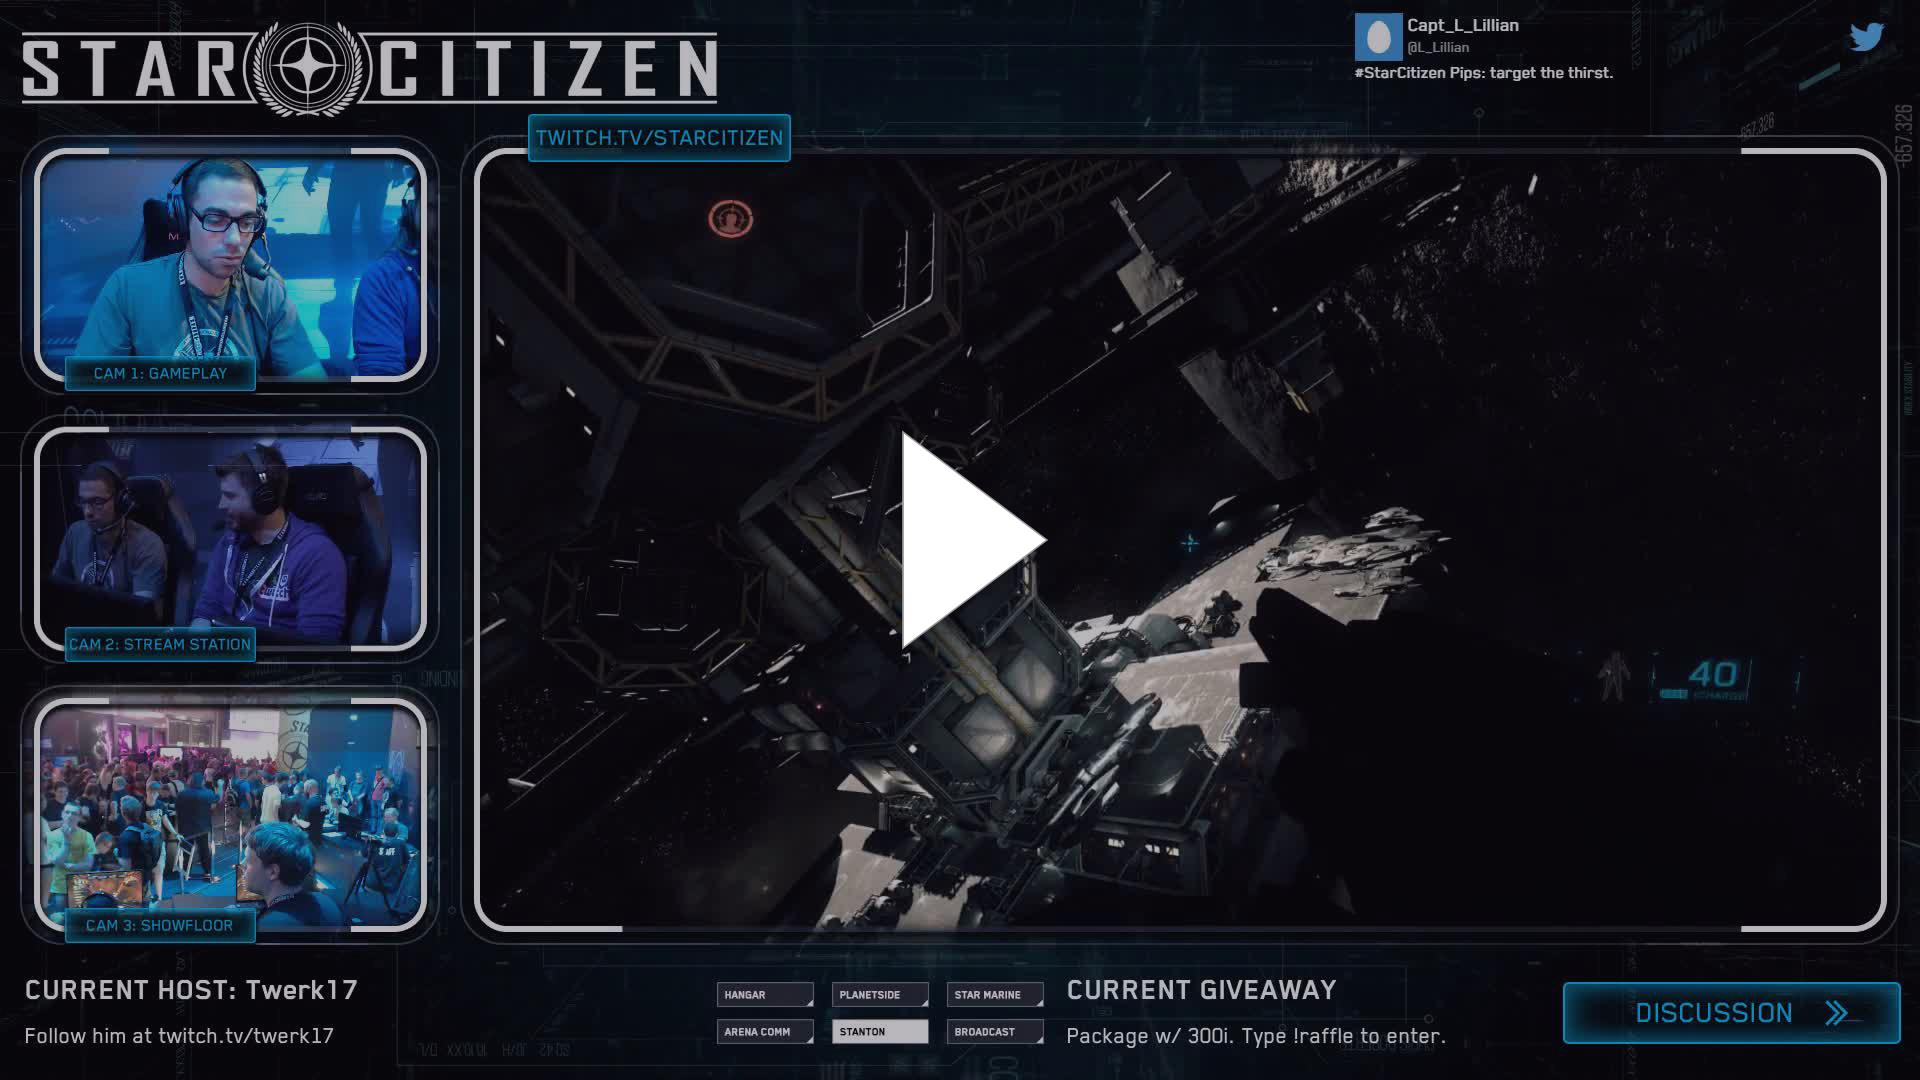 Star Citizen - The Only Time I Hit a Shot - Twitch